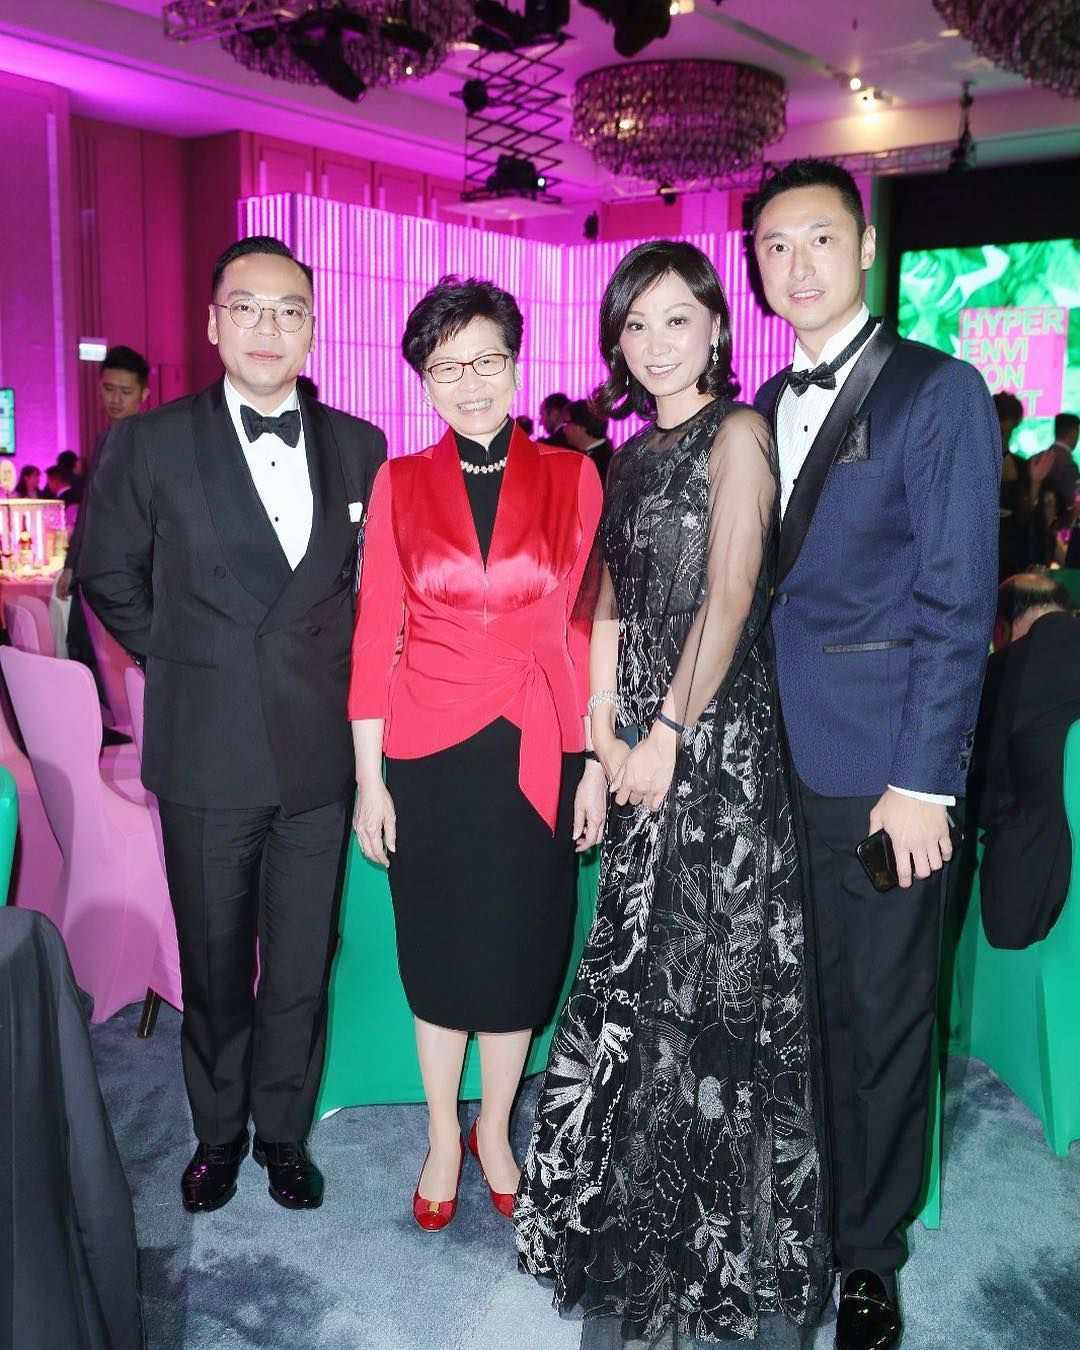 Tatlergram: Highlights From The Ambassadors Ball 2018